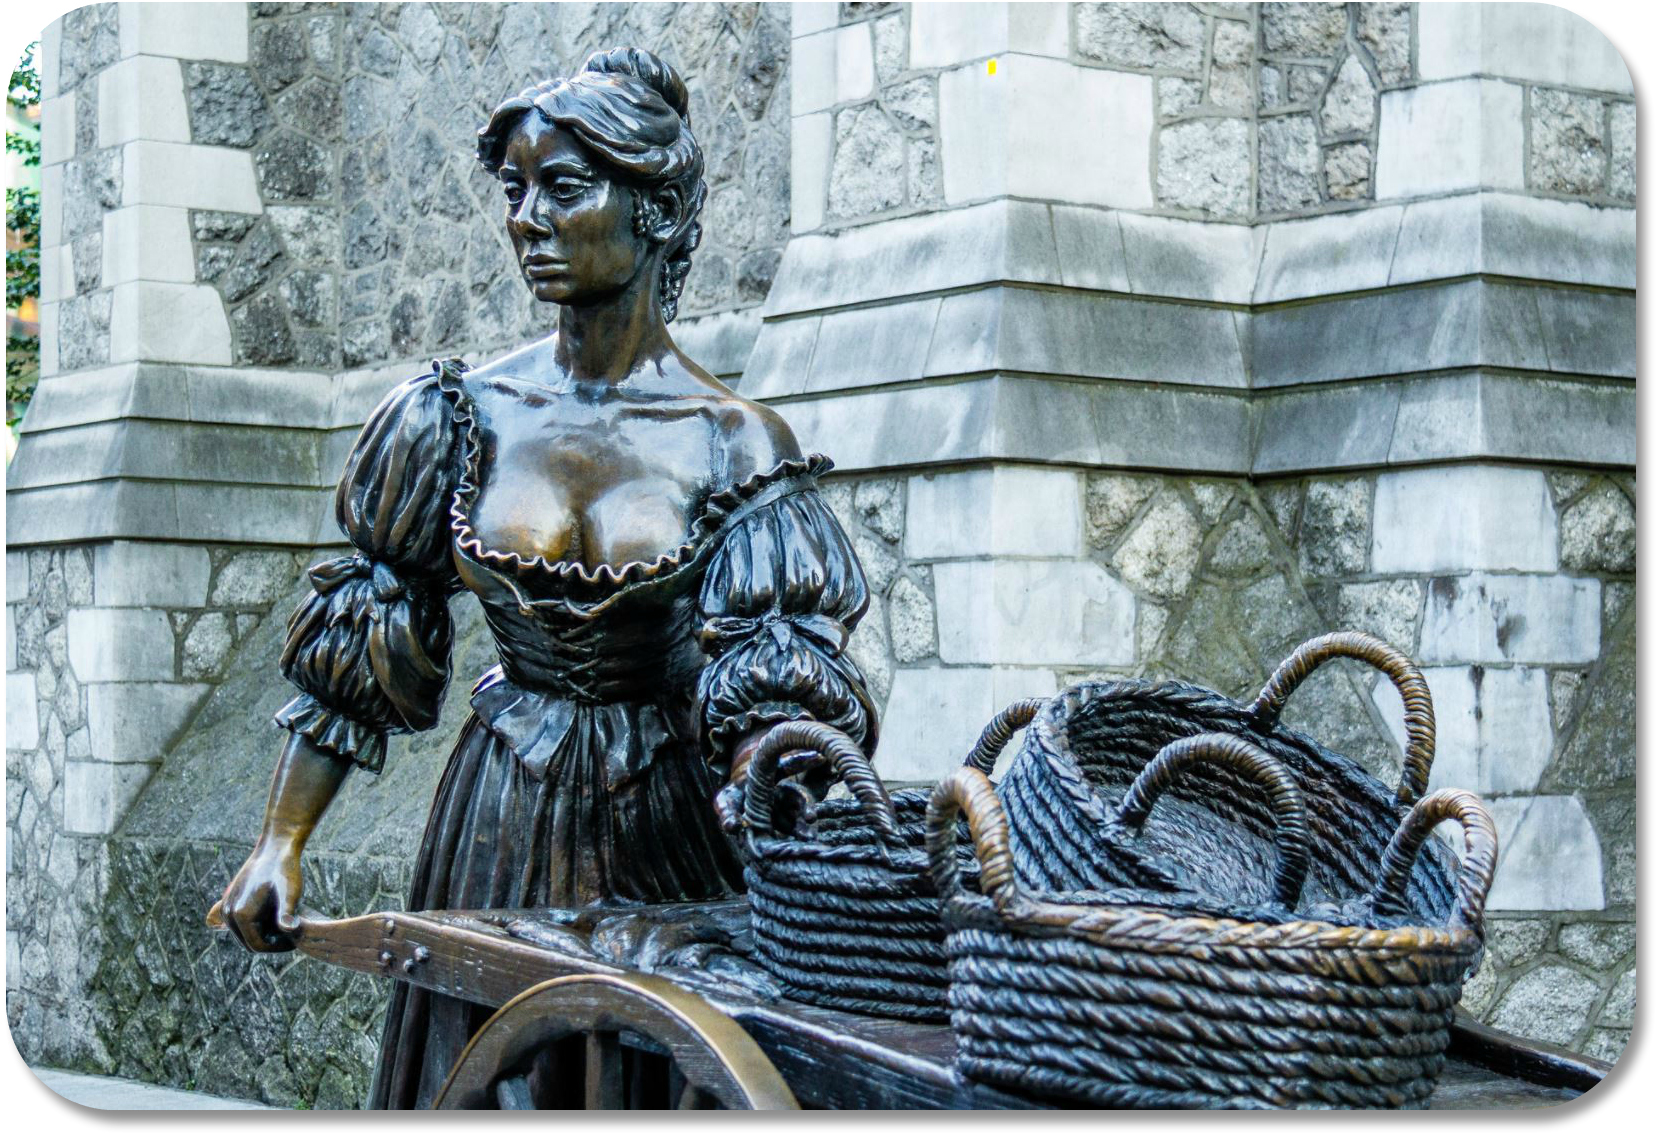 Irish Expressions - Molly Malone Statue photocredit Marcial Bernabeau via Flickr